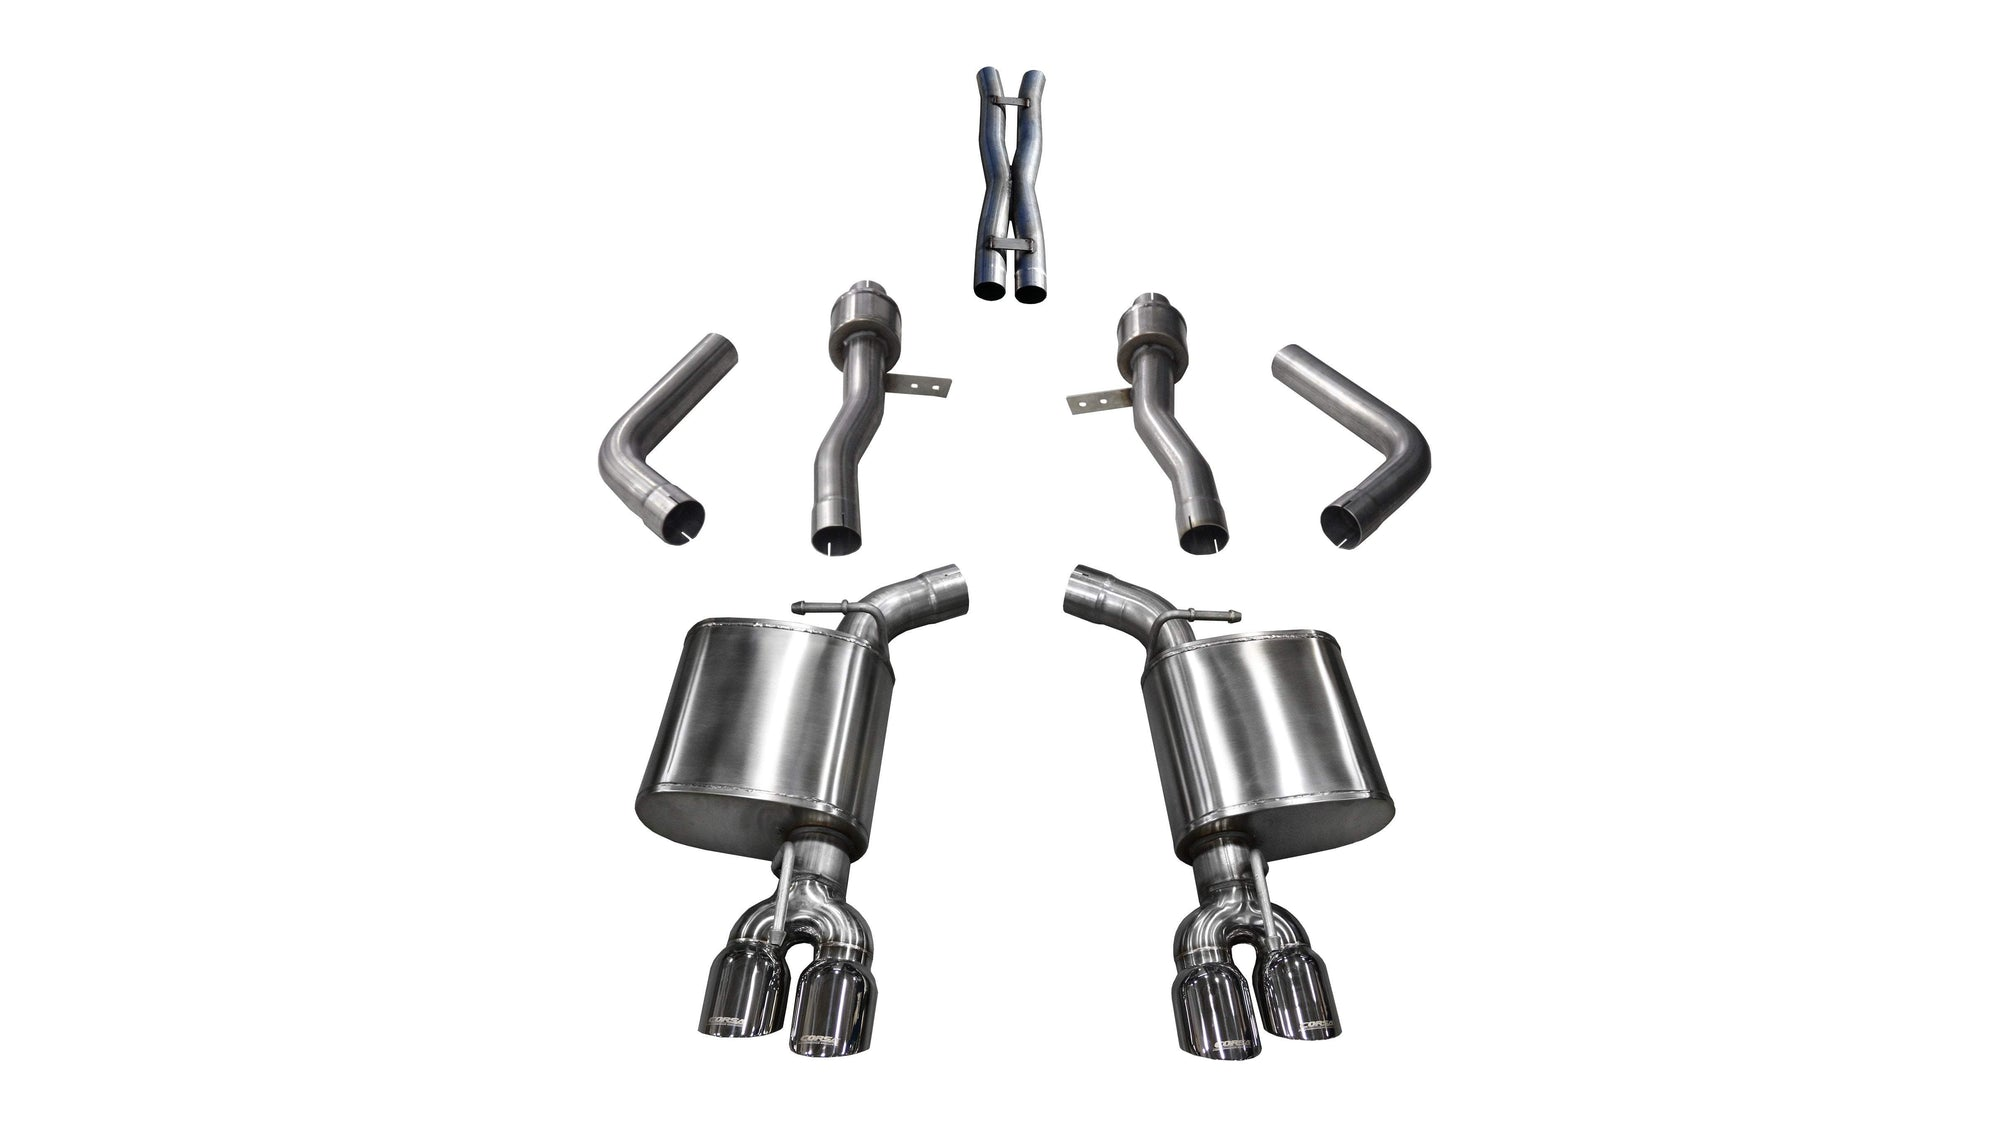 "CORSA PERFORMANCE Cat-Back Exhaust Polished / Sport / Dual Rear - Twin 3.5in 2017-2019 Dodge Challenger, 5.7L V8, 2.75"" Dual Rear Exit Cat-Back Exhaust System with Twin 3.5"" Tips (21005) Sport Sound Level"